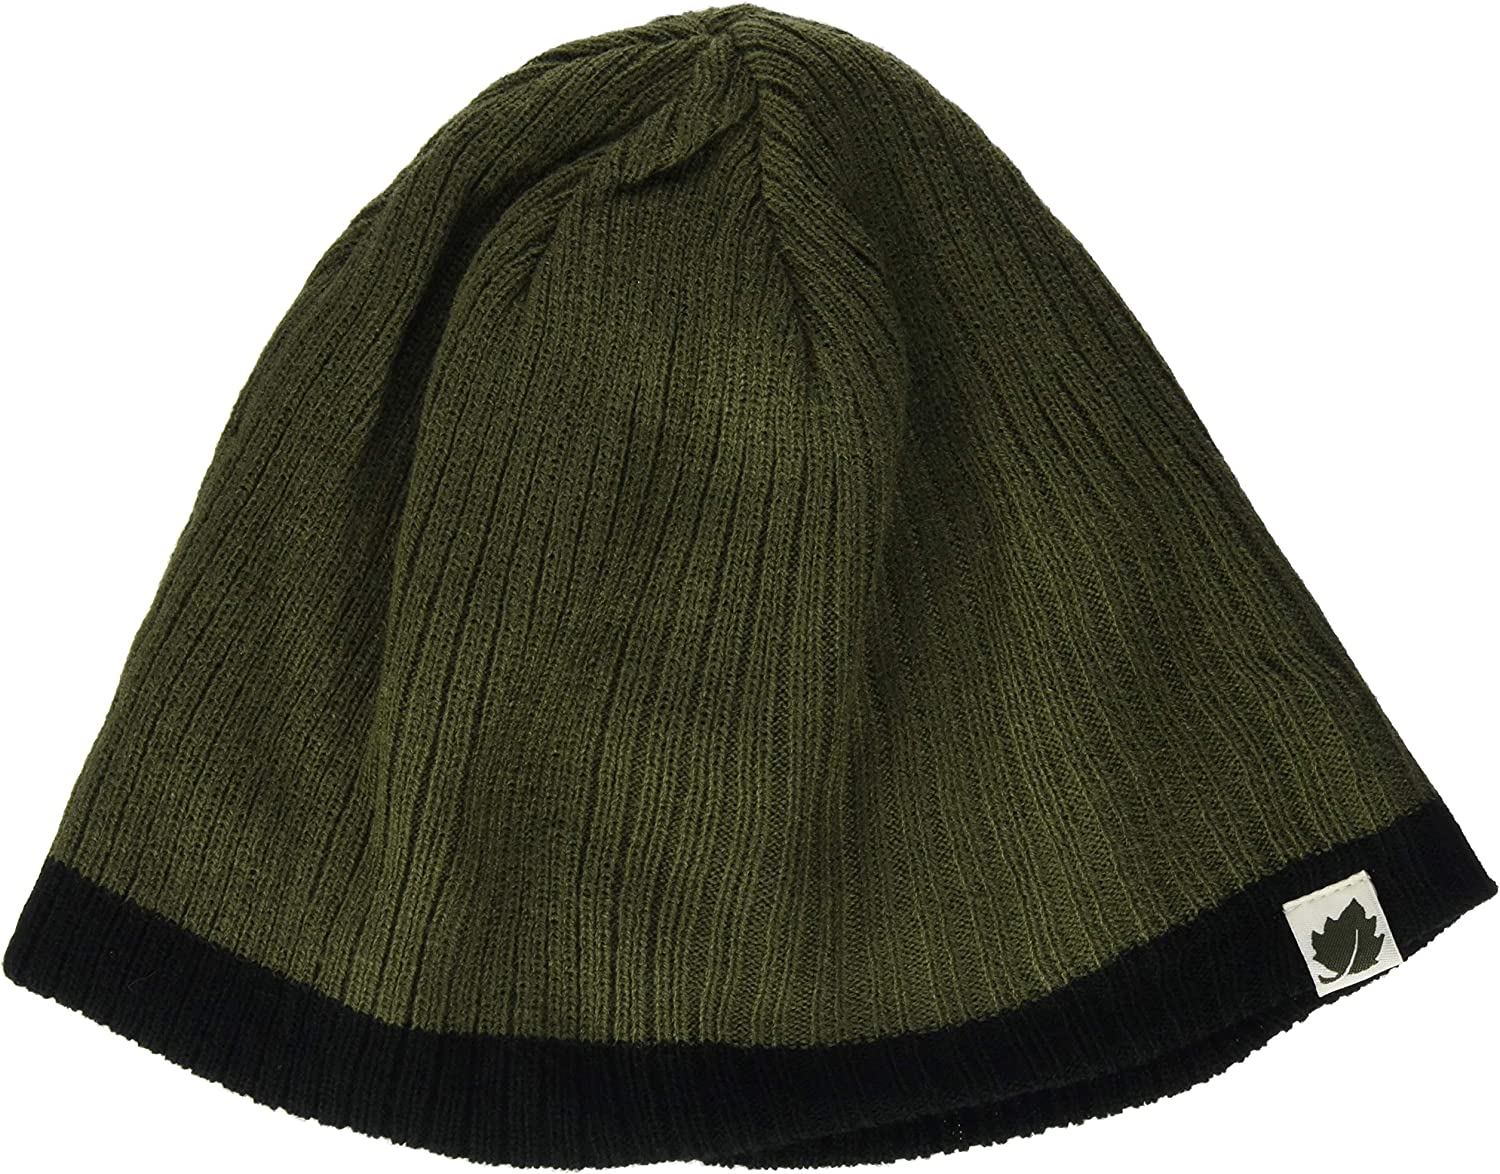 Popular product Lafuma Men's Derry Beanie New product!! M